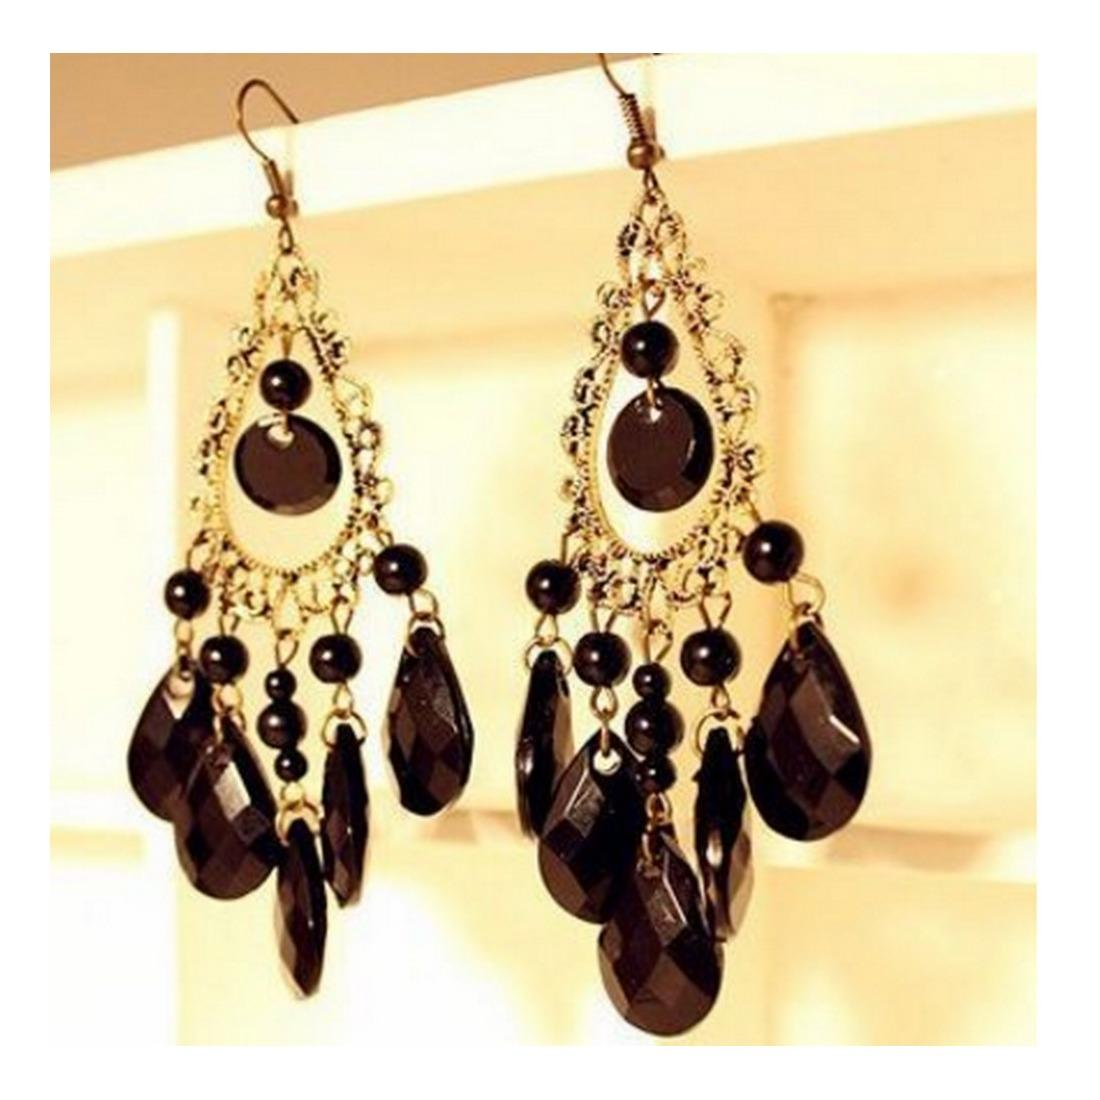 TOKO49 - Anting rumbai berlian retro motif air